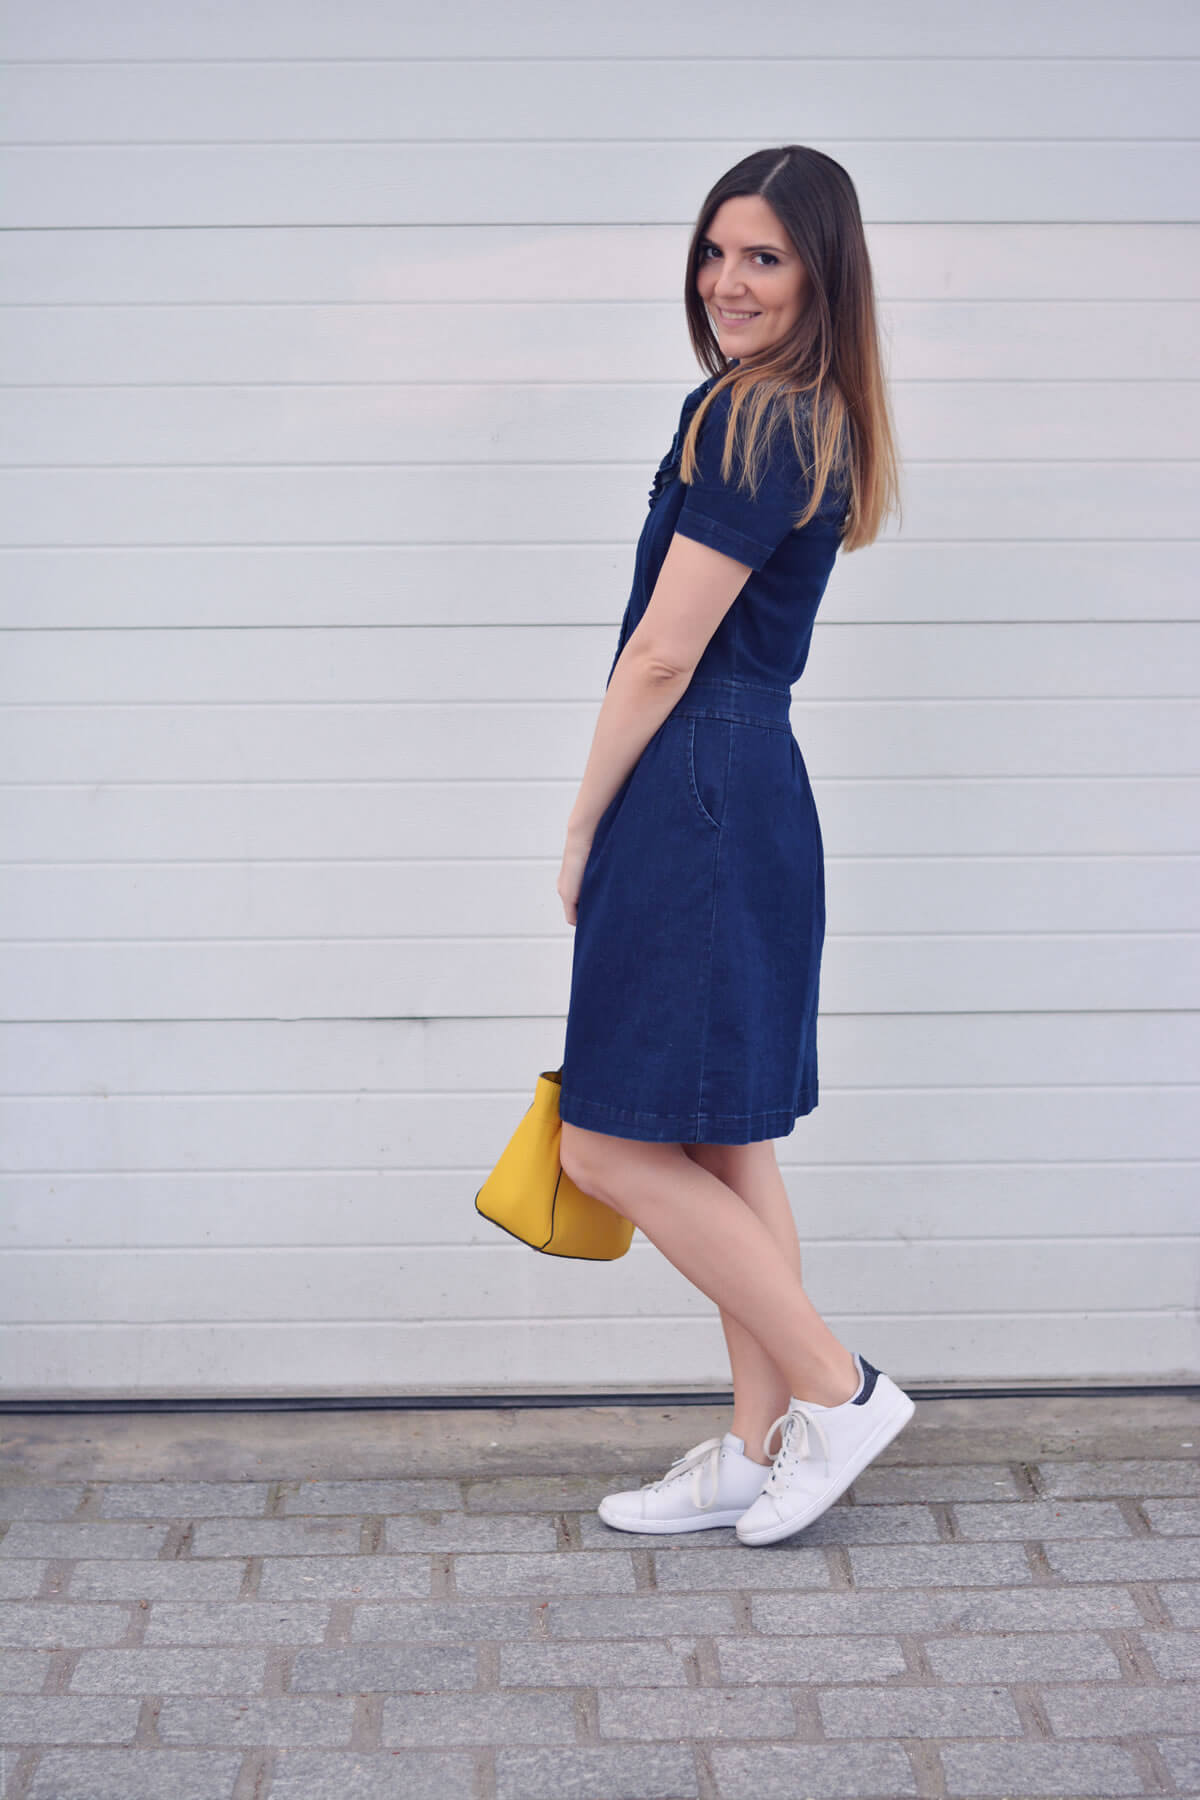 comment porter la robe en jean blog mode paris